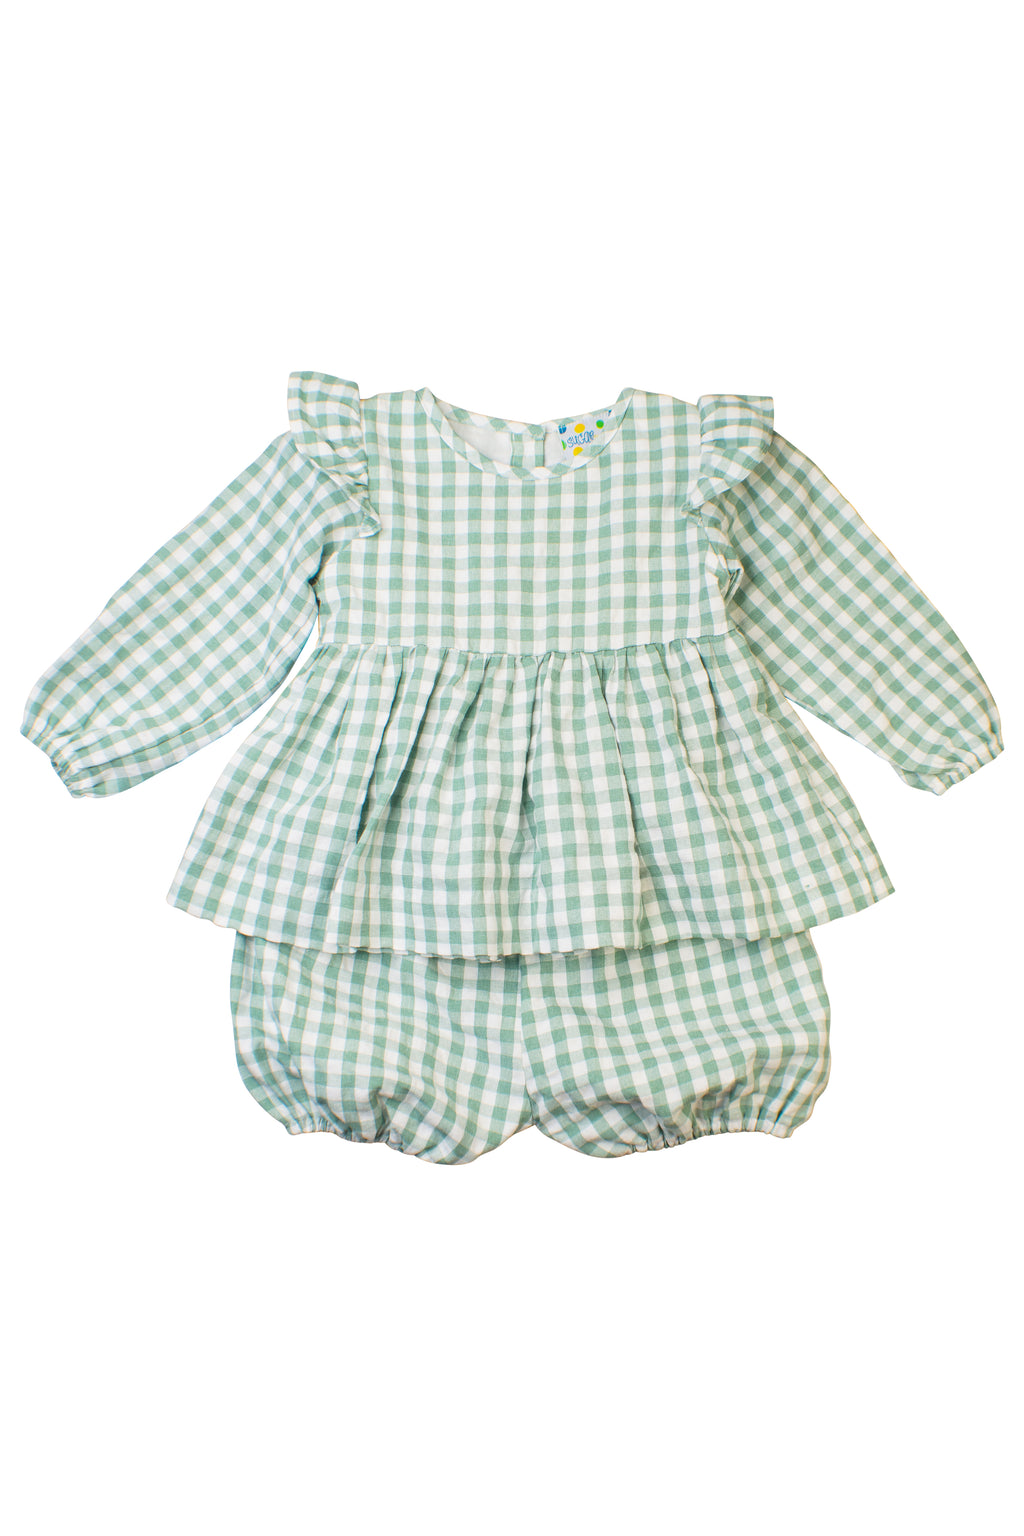 Girls Sage Classic Check Bloomer Shorts Set